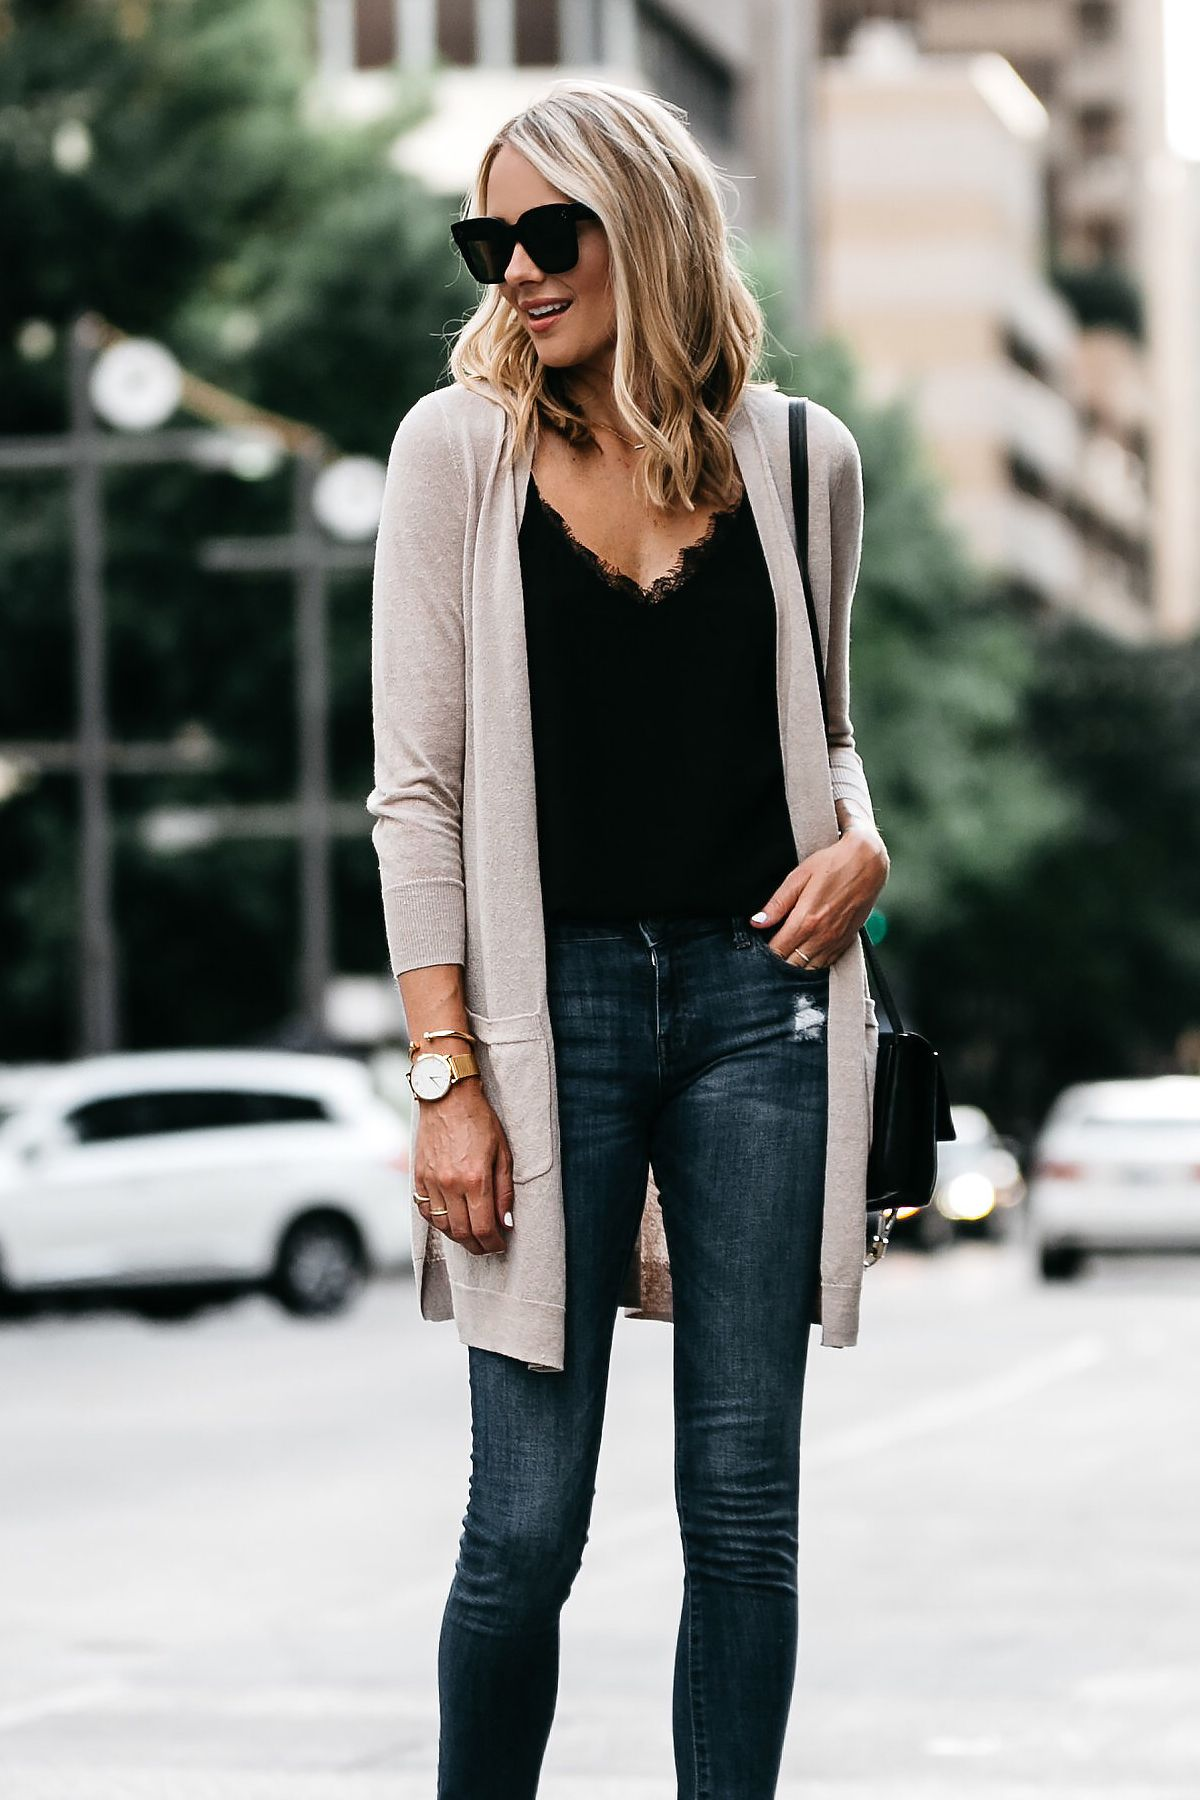 d2a3ba853e6c Blonde Woman Wearing Long Tan Cardigan Black Lace Cami Denim Skinny Jeans  Outfit Fashion Jackson Dallas Blogger Fashion Blogger